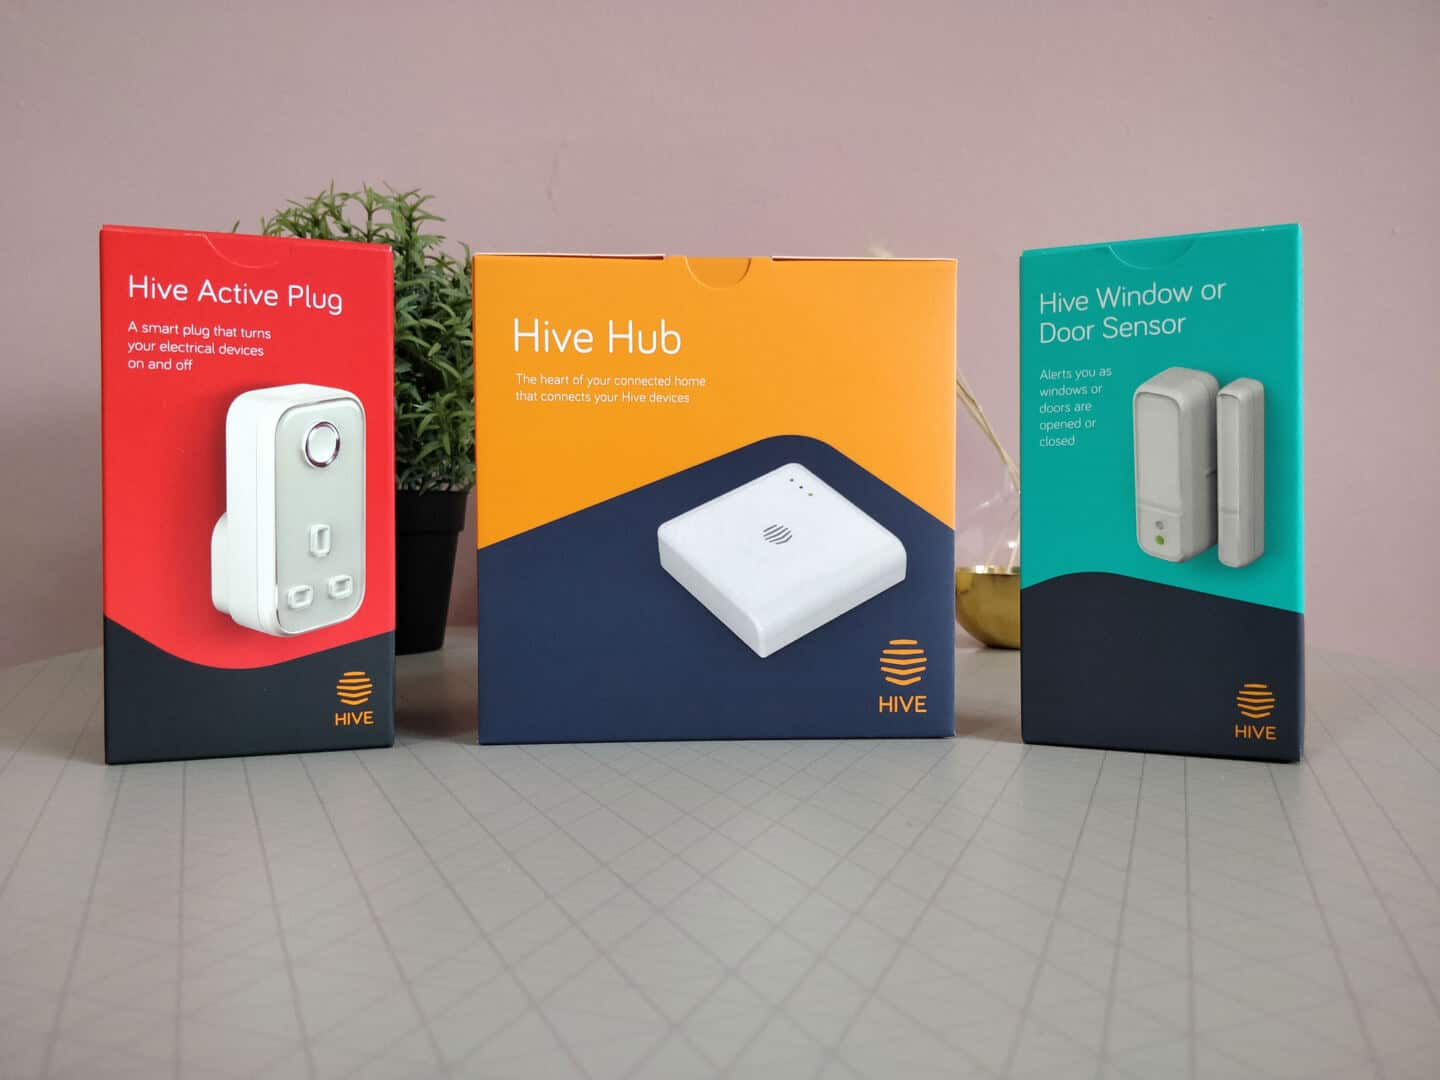 Hive smart devices can be used to create a smart office